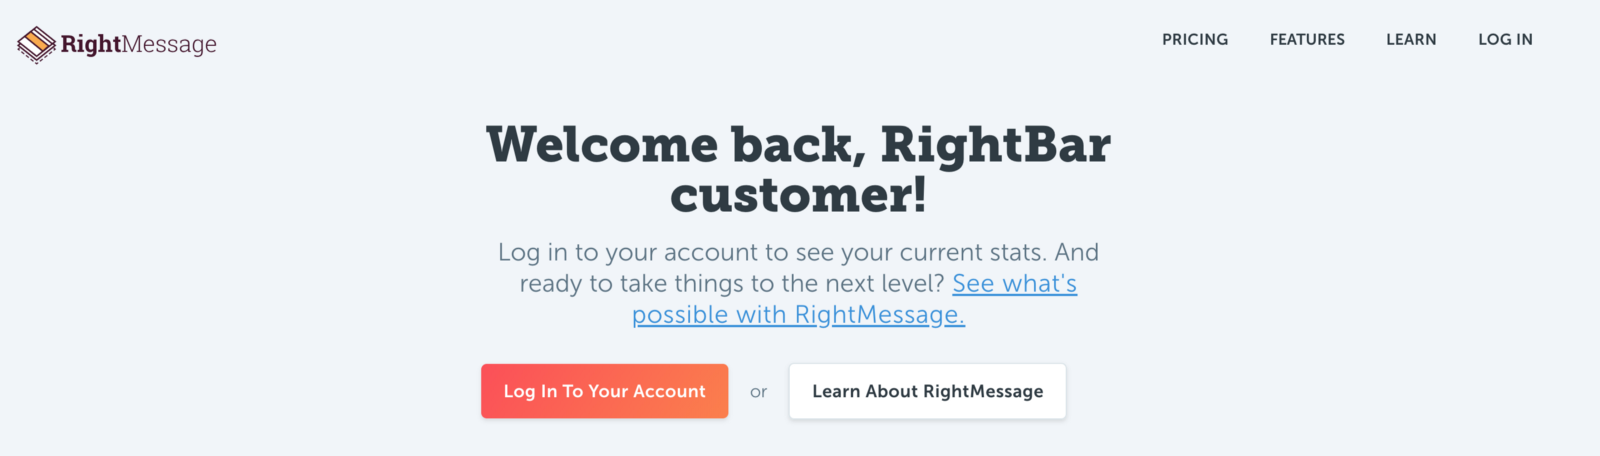 """(As an example, I can't even go to the original RightMessage home page because it knows I'm already a RightBar customer, and it welcomes me  back. My feelings? """"AWW, you know me, you really know me!"""")"""